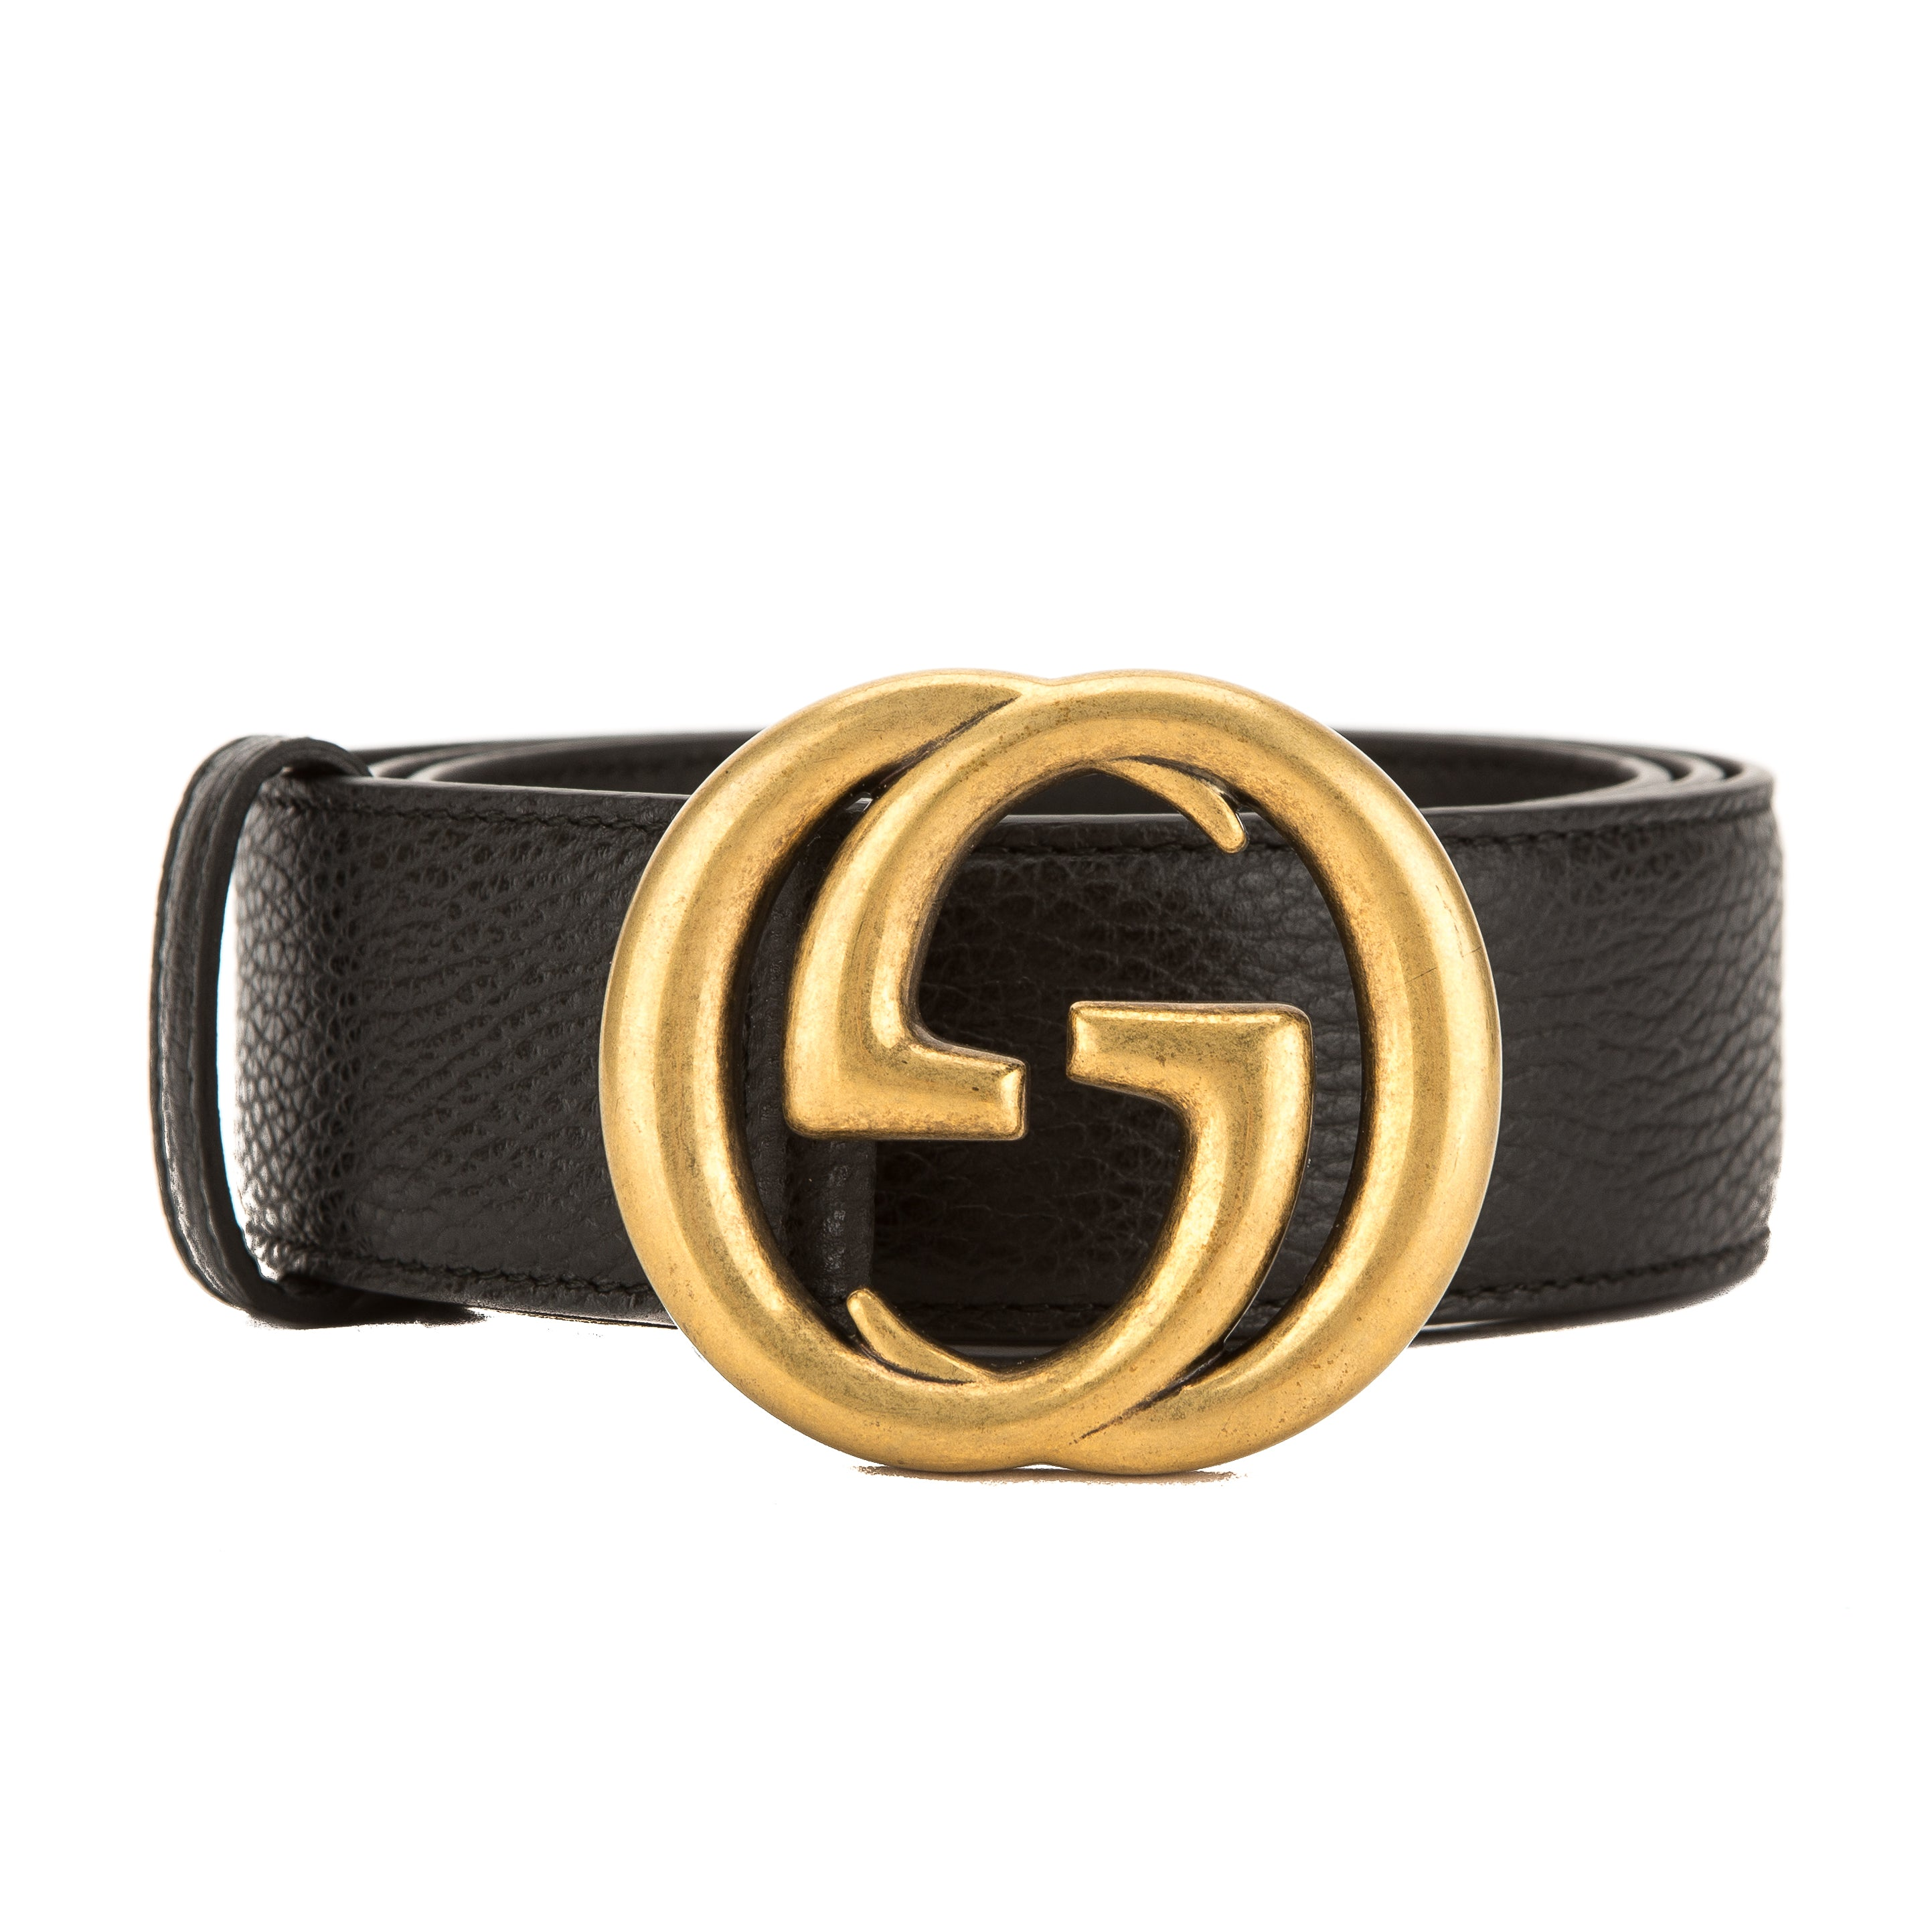 3dd0279c8 Gucci Black Leather Belt with Interlocking G Buckle (New with Tags ...